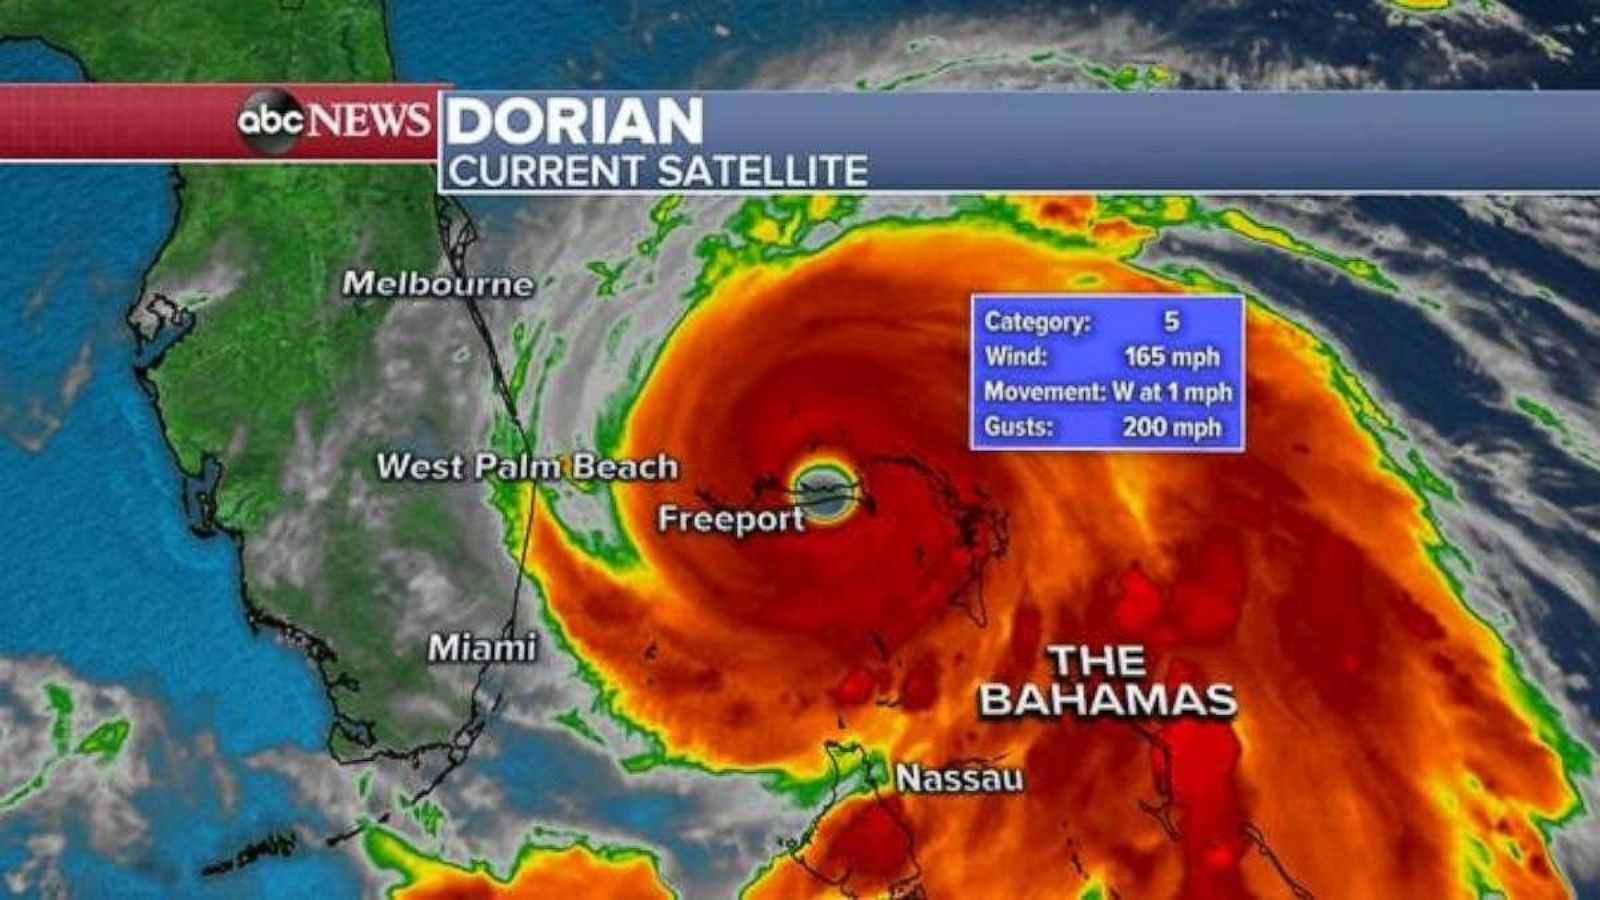 Pure ': Category 5 Hurricane Dorian brings historic ... Satellite Map Of Freeport Bahamas on map fla bahamas, map of cancun, map of montego bay jamaica, map of barbados, map of delhi india, map of freeport texas, map of buenos aires argentina, map of rio de janeiro brazil, map of barcelona spain, grand lucayan bahamas, map of curacao, map of freeport maine, map of madrid spain, nassau bahamas, map of nassau and freeport, map long island bahamas, map of managua nicaragua, map of san salvador el salvador, map of fort de france martinique, map of freeport trinidad,